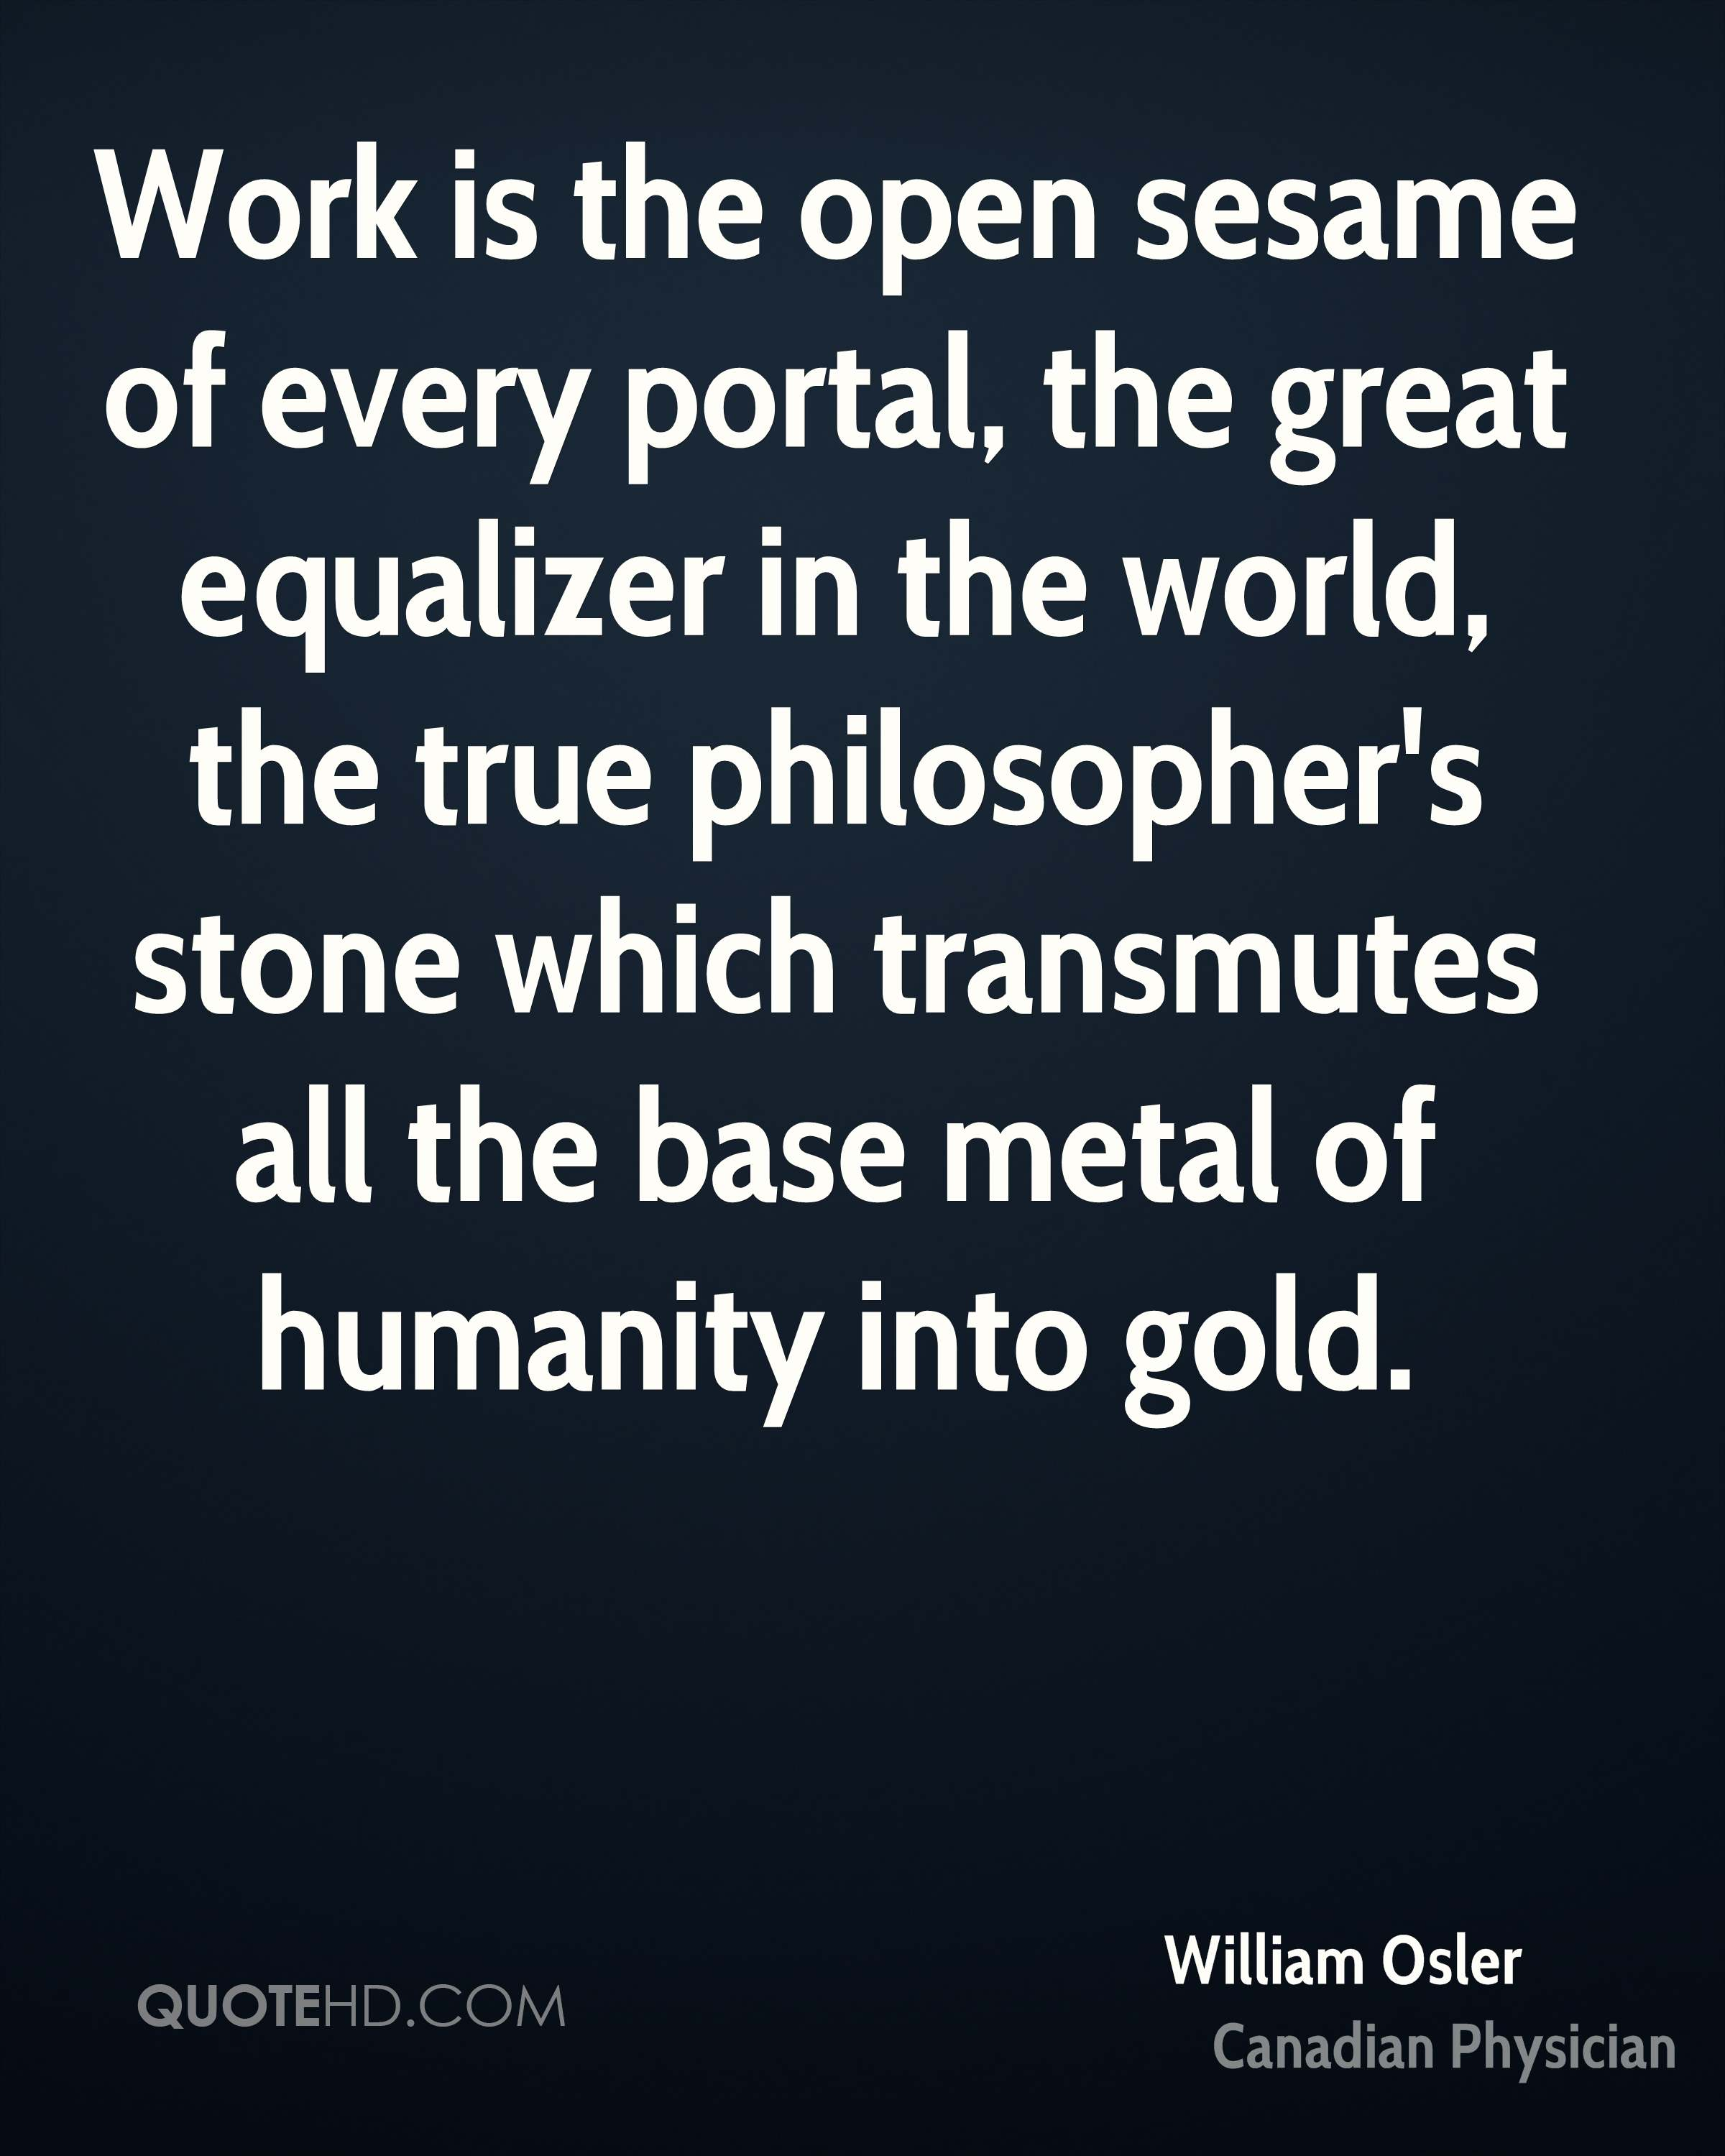 Work is the open sesame of every portal, the great equalizer in the world, the true philosopher's stone which transmutes all the base metal of humanity into gold.